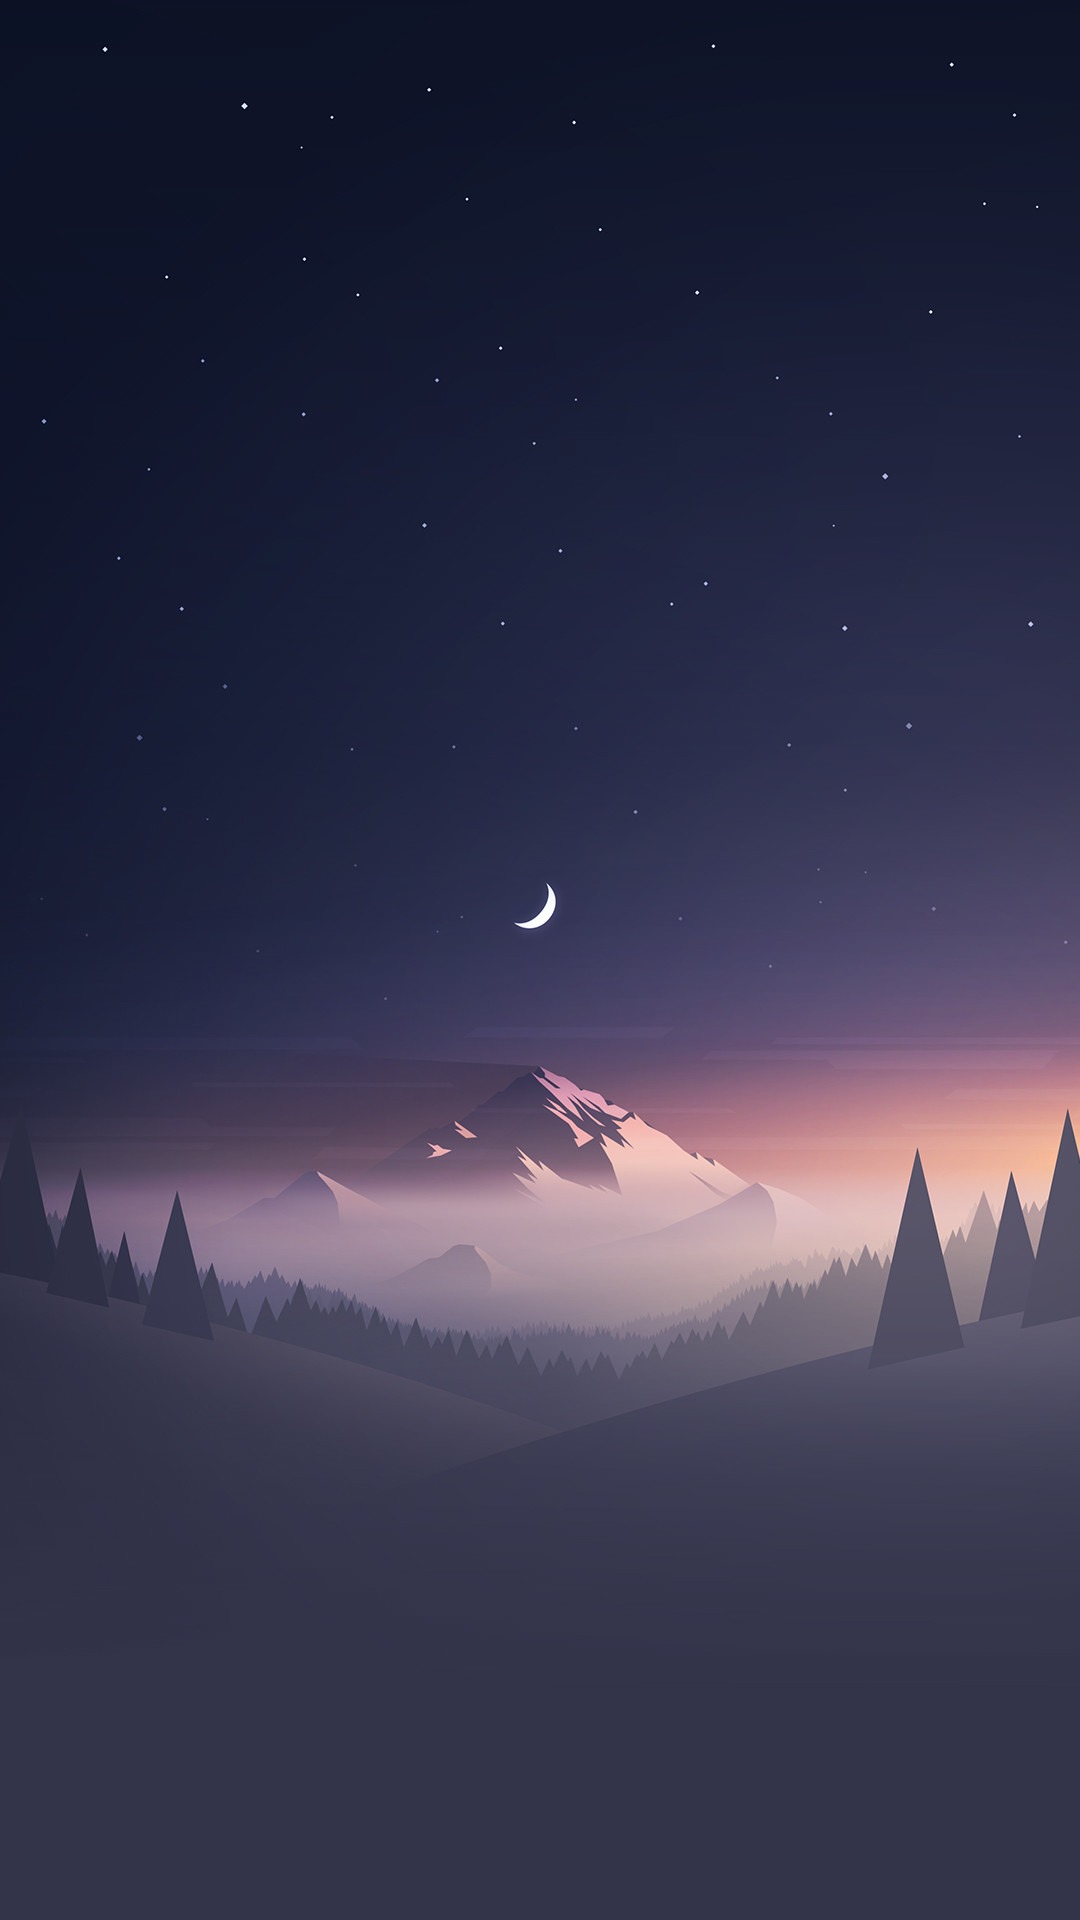 1080x1920 Stars And Moon Winter Mountain Landscape iPhone 6+ HD Wallpaper